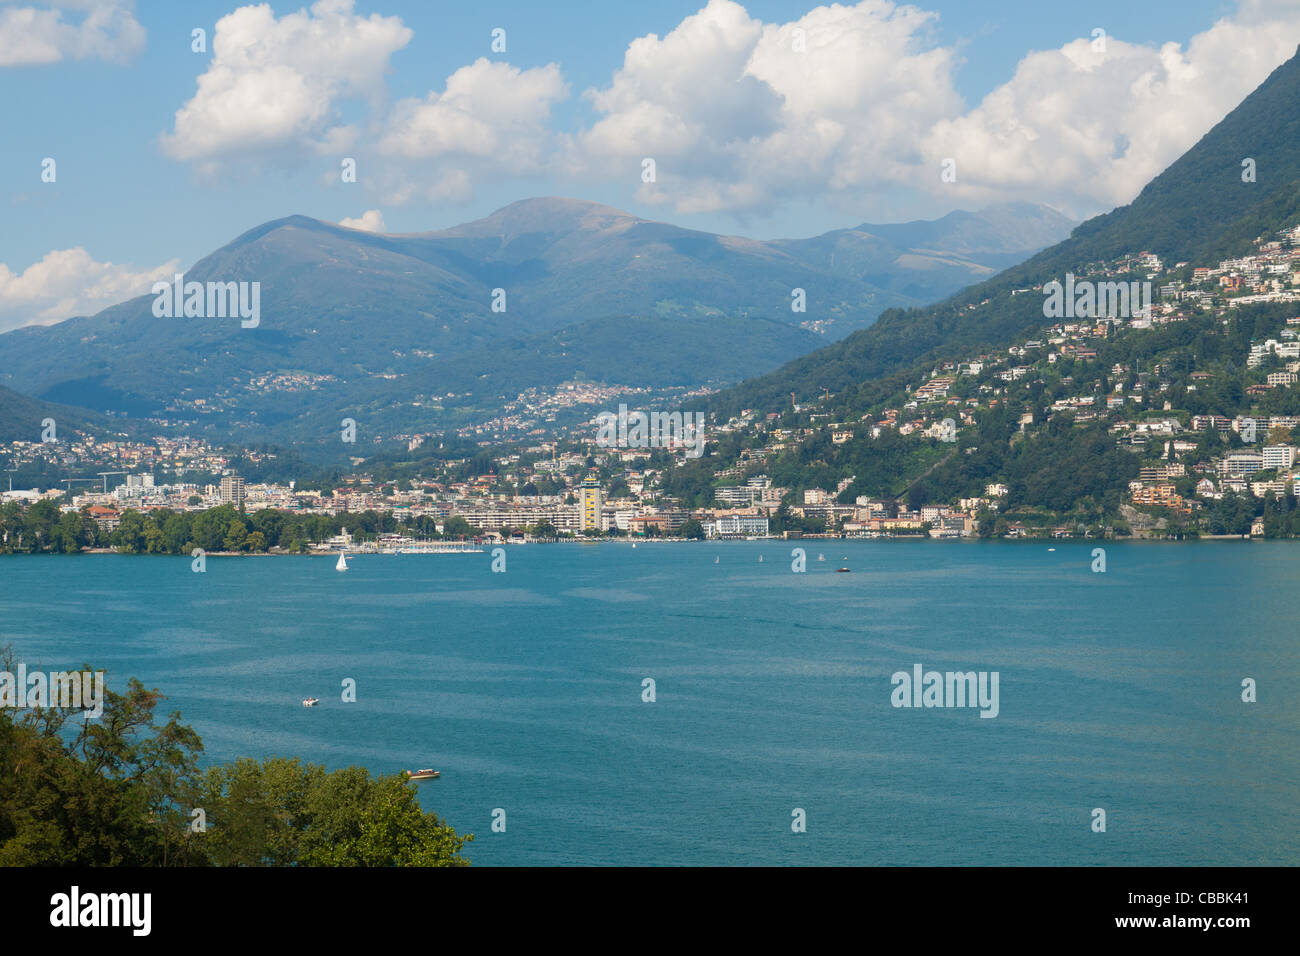 View of Lugano with blue lake in front Stock Photo